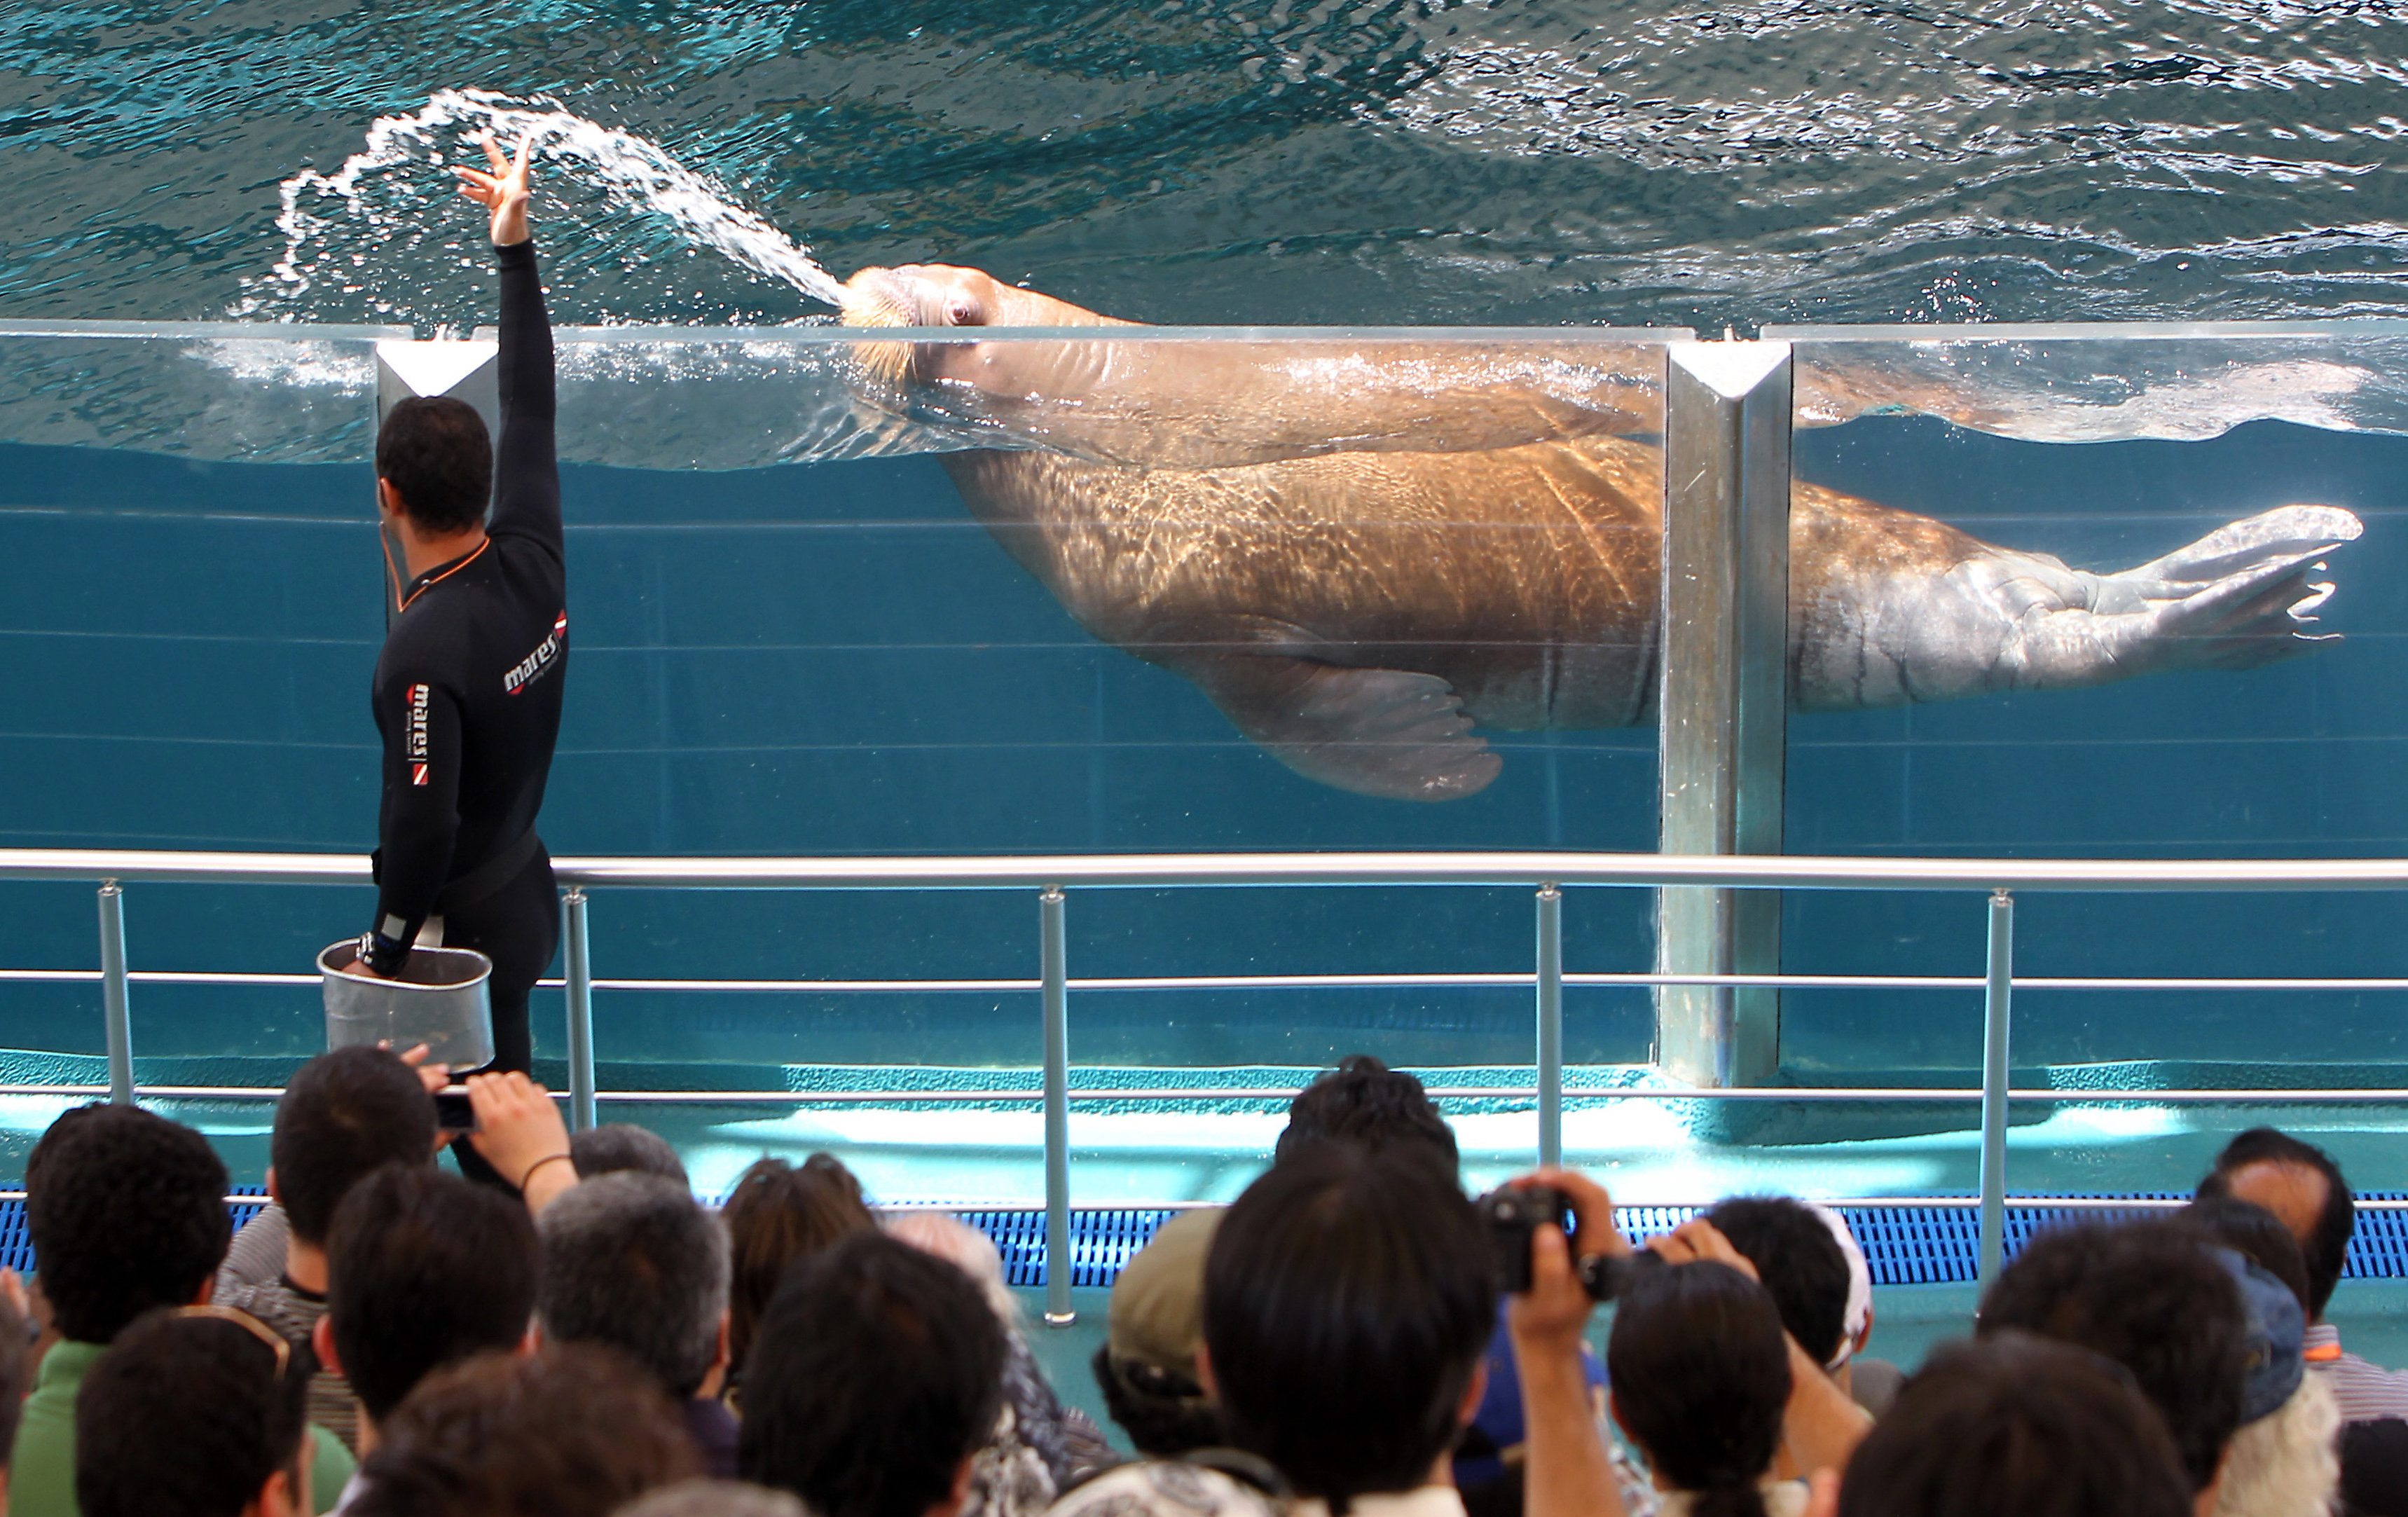 A sea lion performs during a show in the Kish Island resort in the Gulf